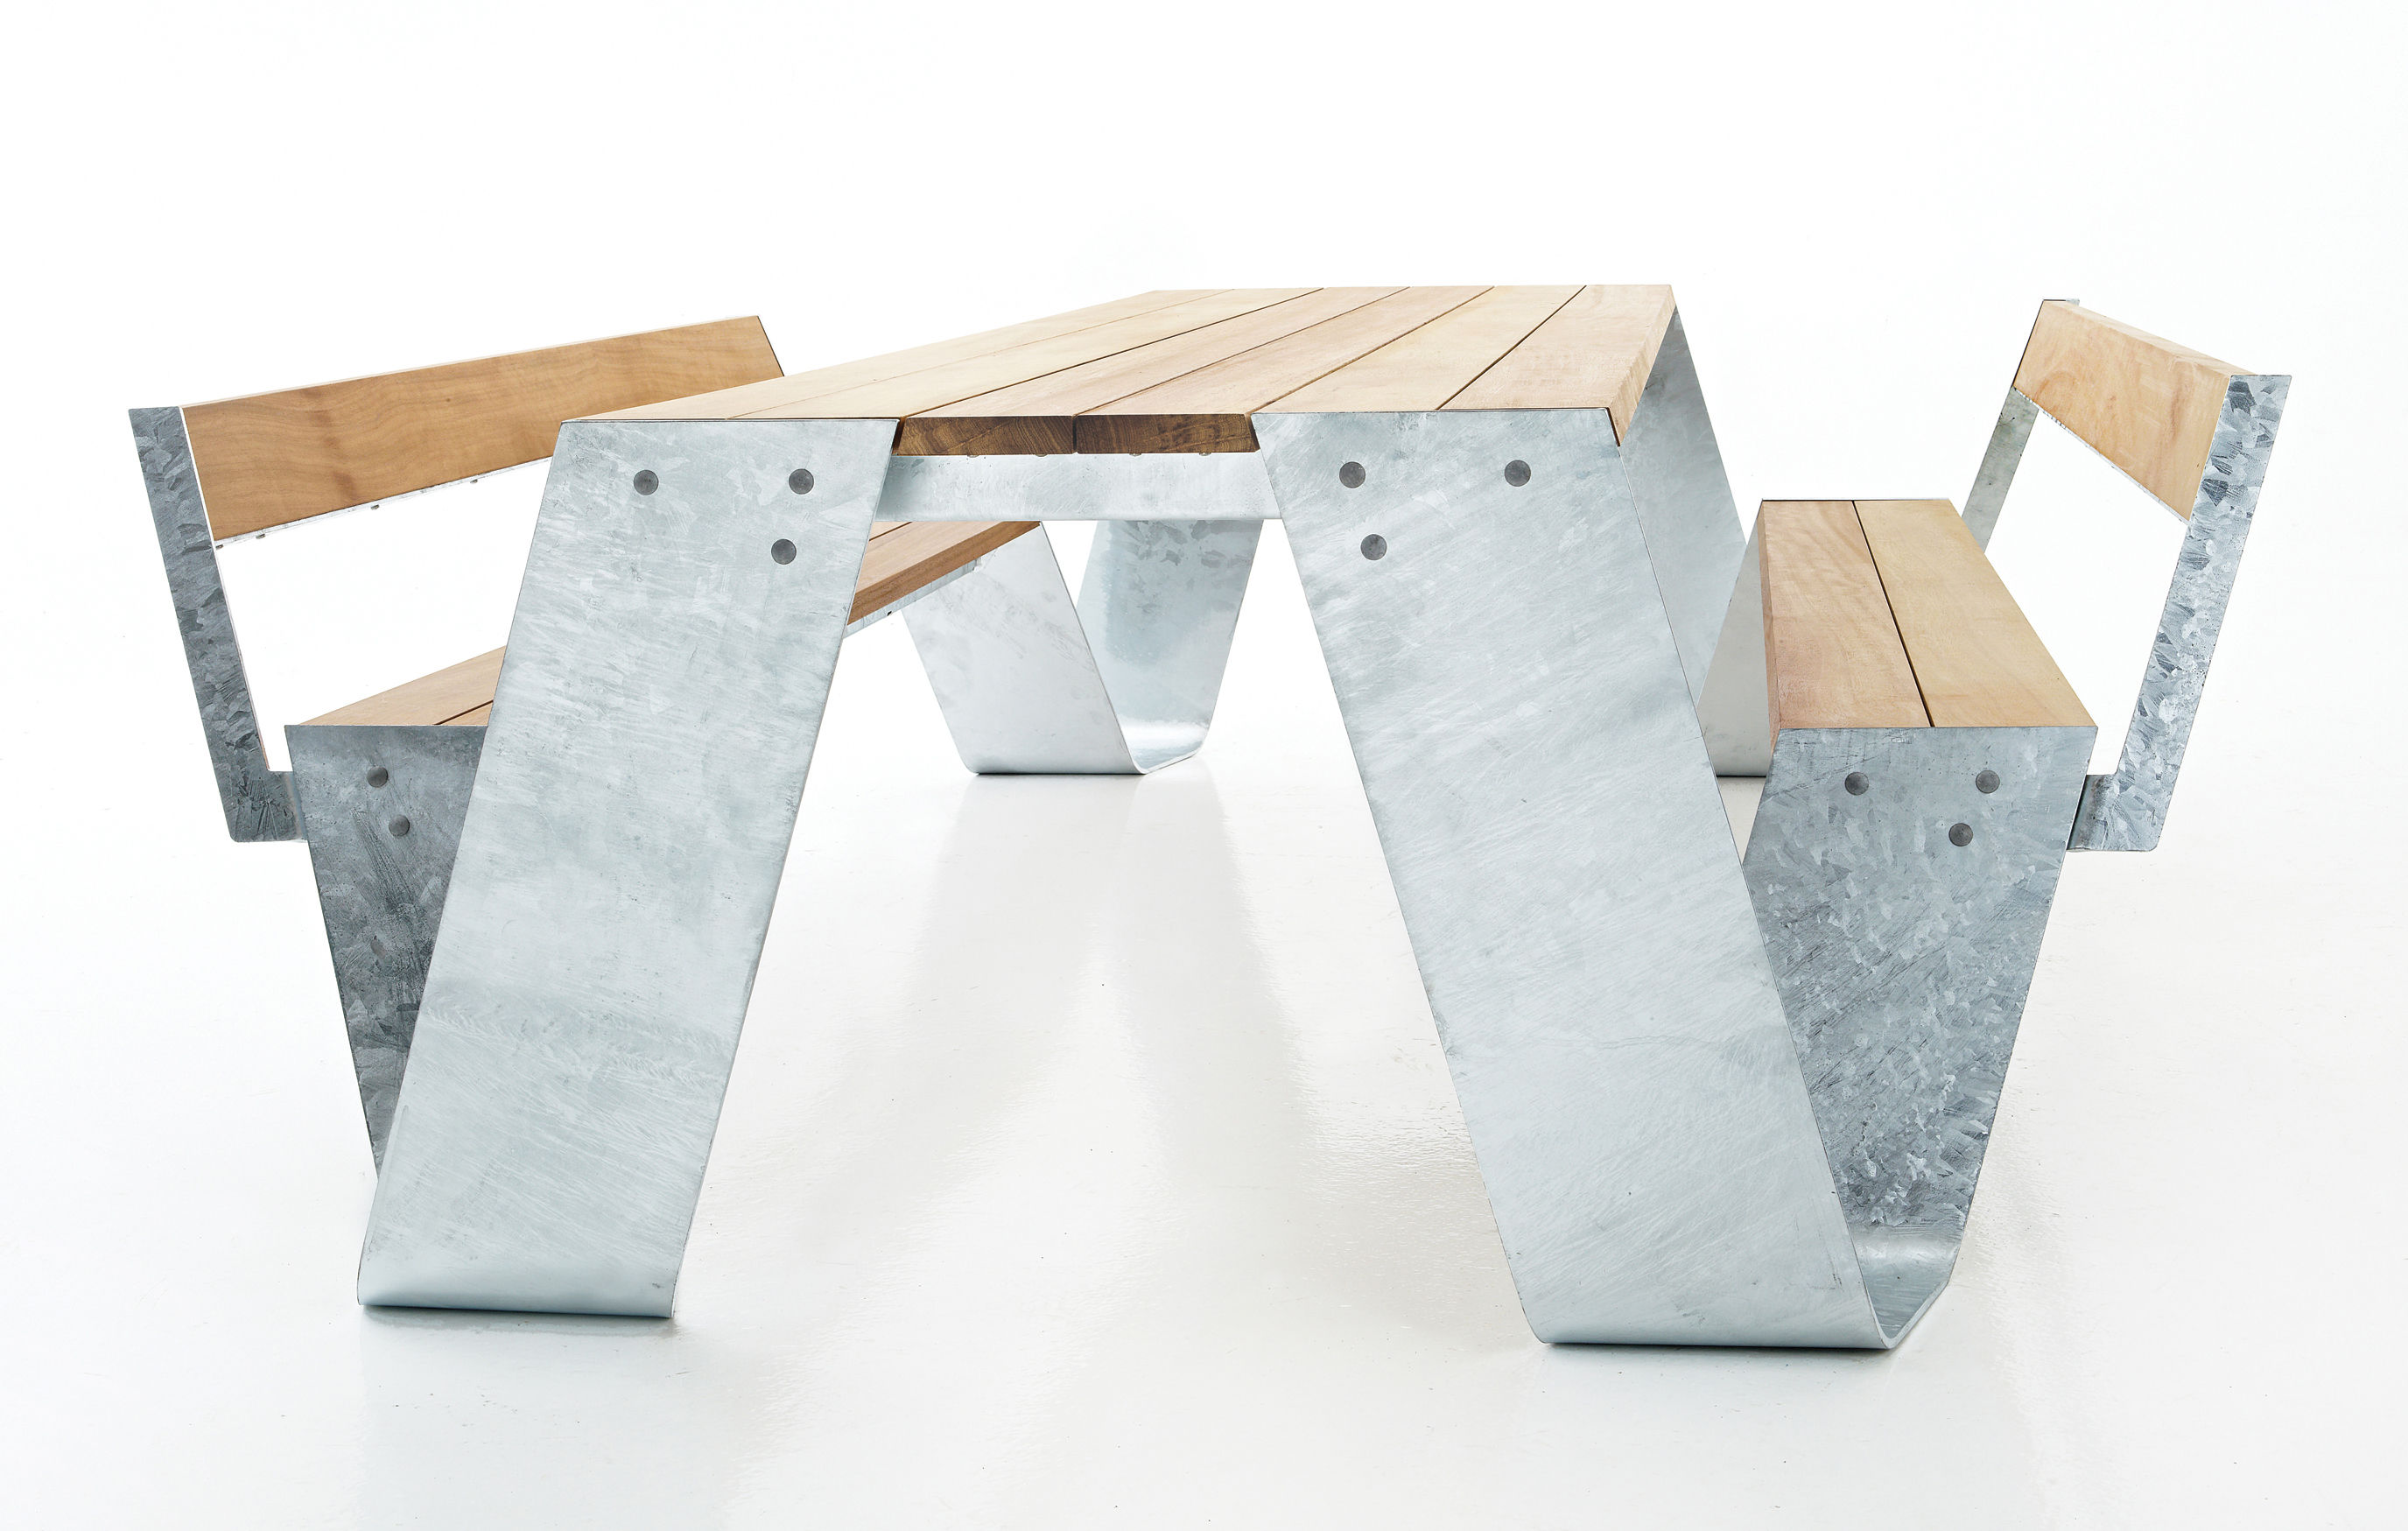 Hopper Set Table Amp Benches Galvanized Steel Wood By